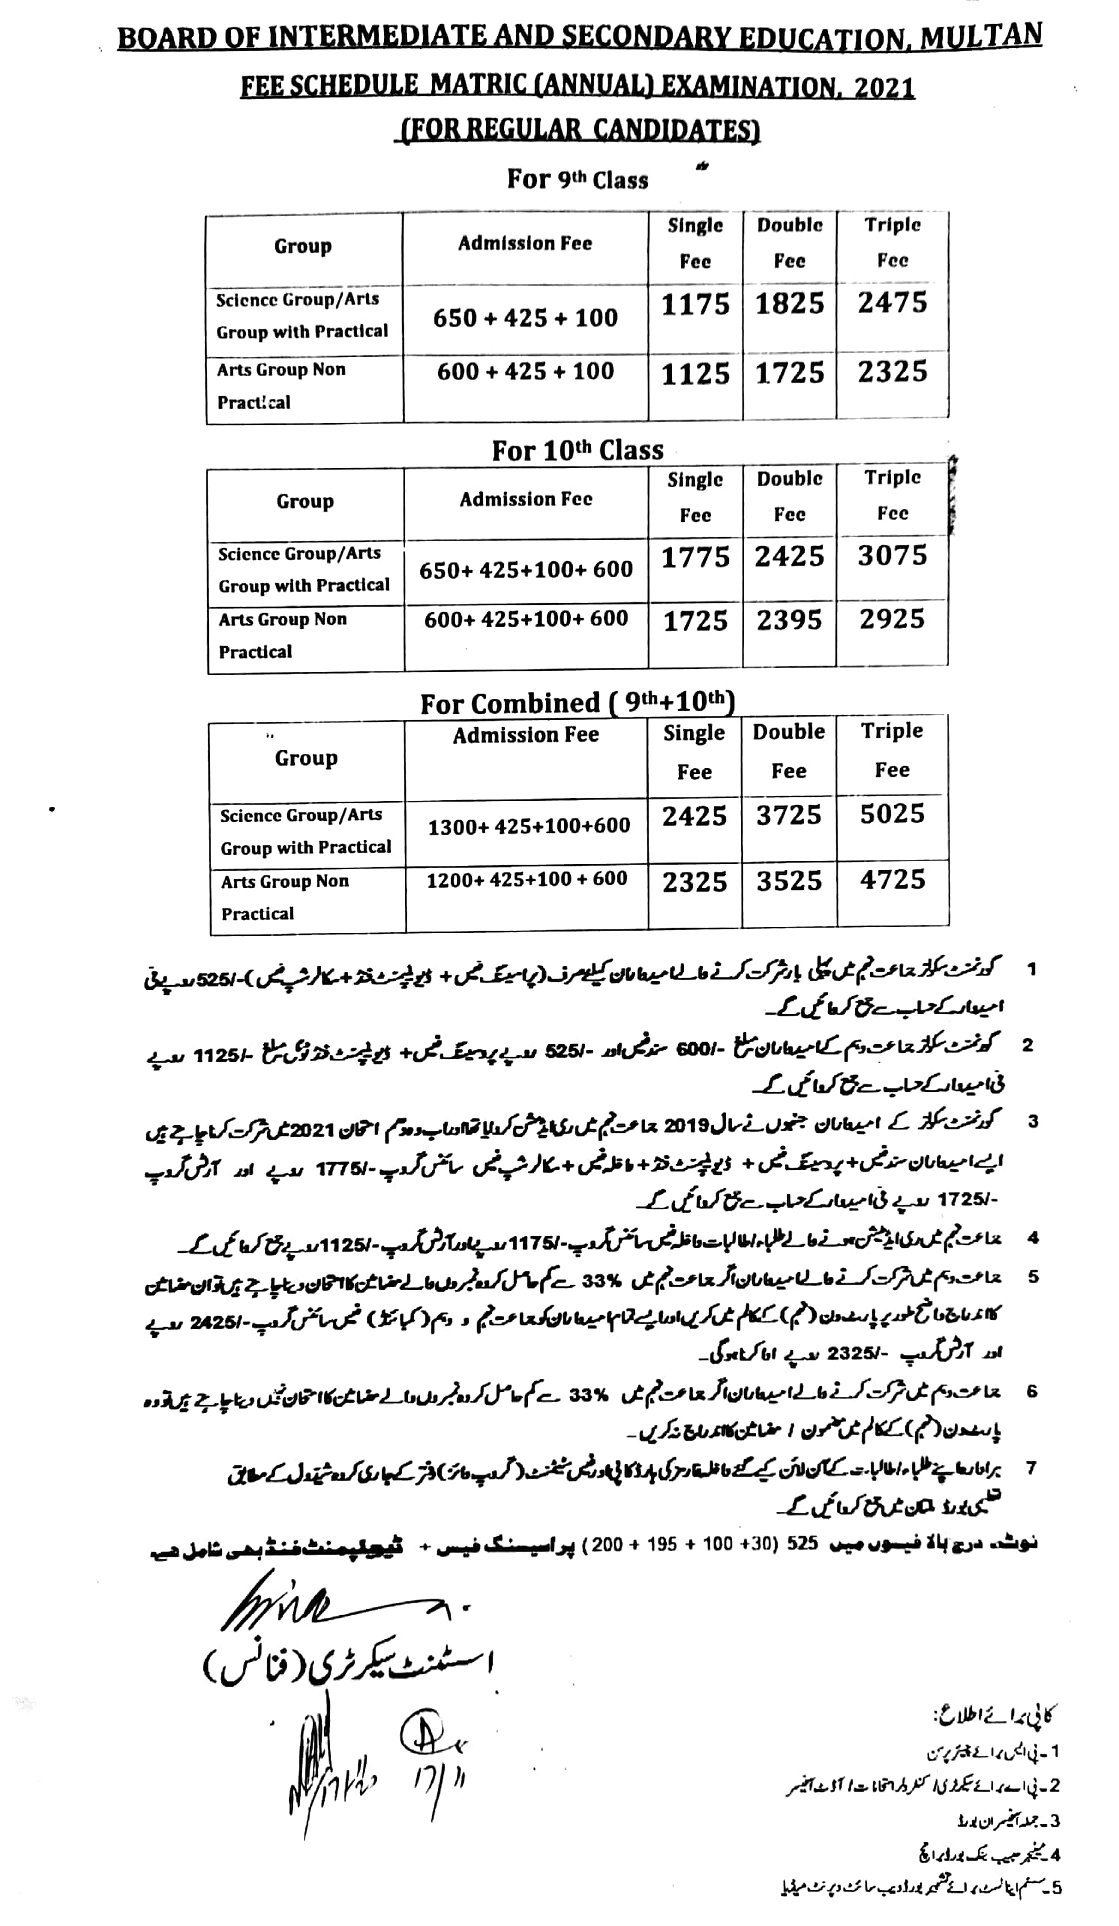 Fee Regular Students Matric Examination 2021